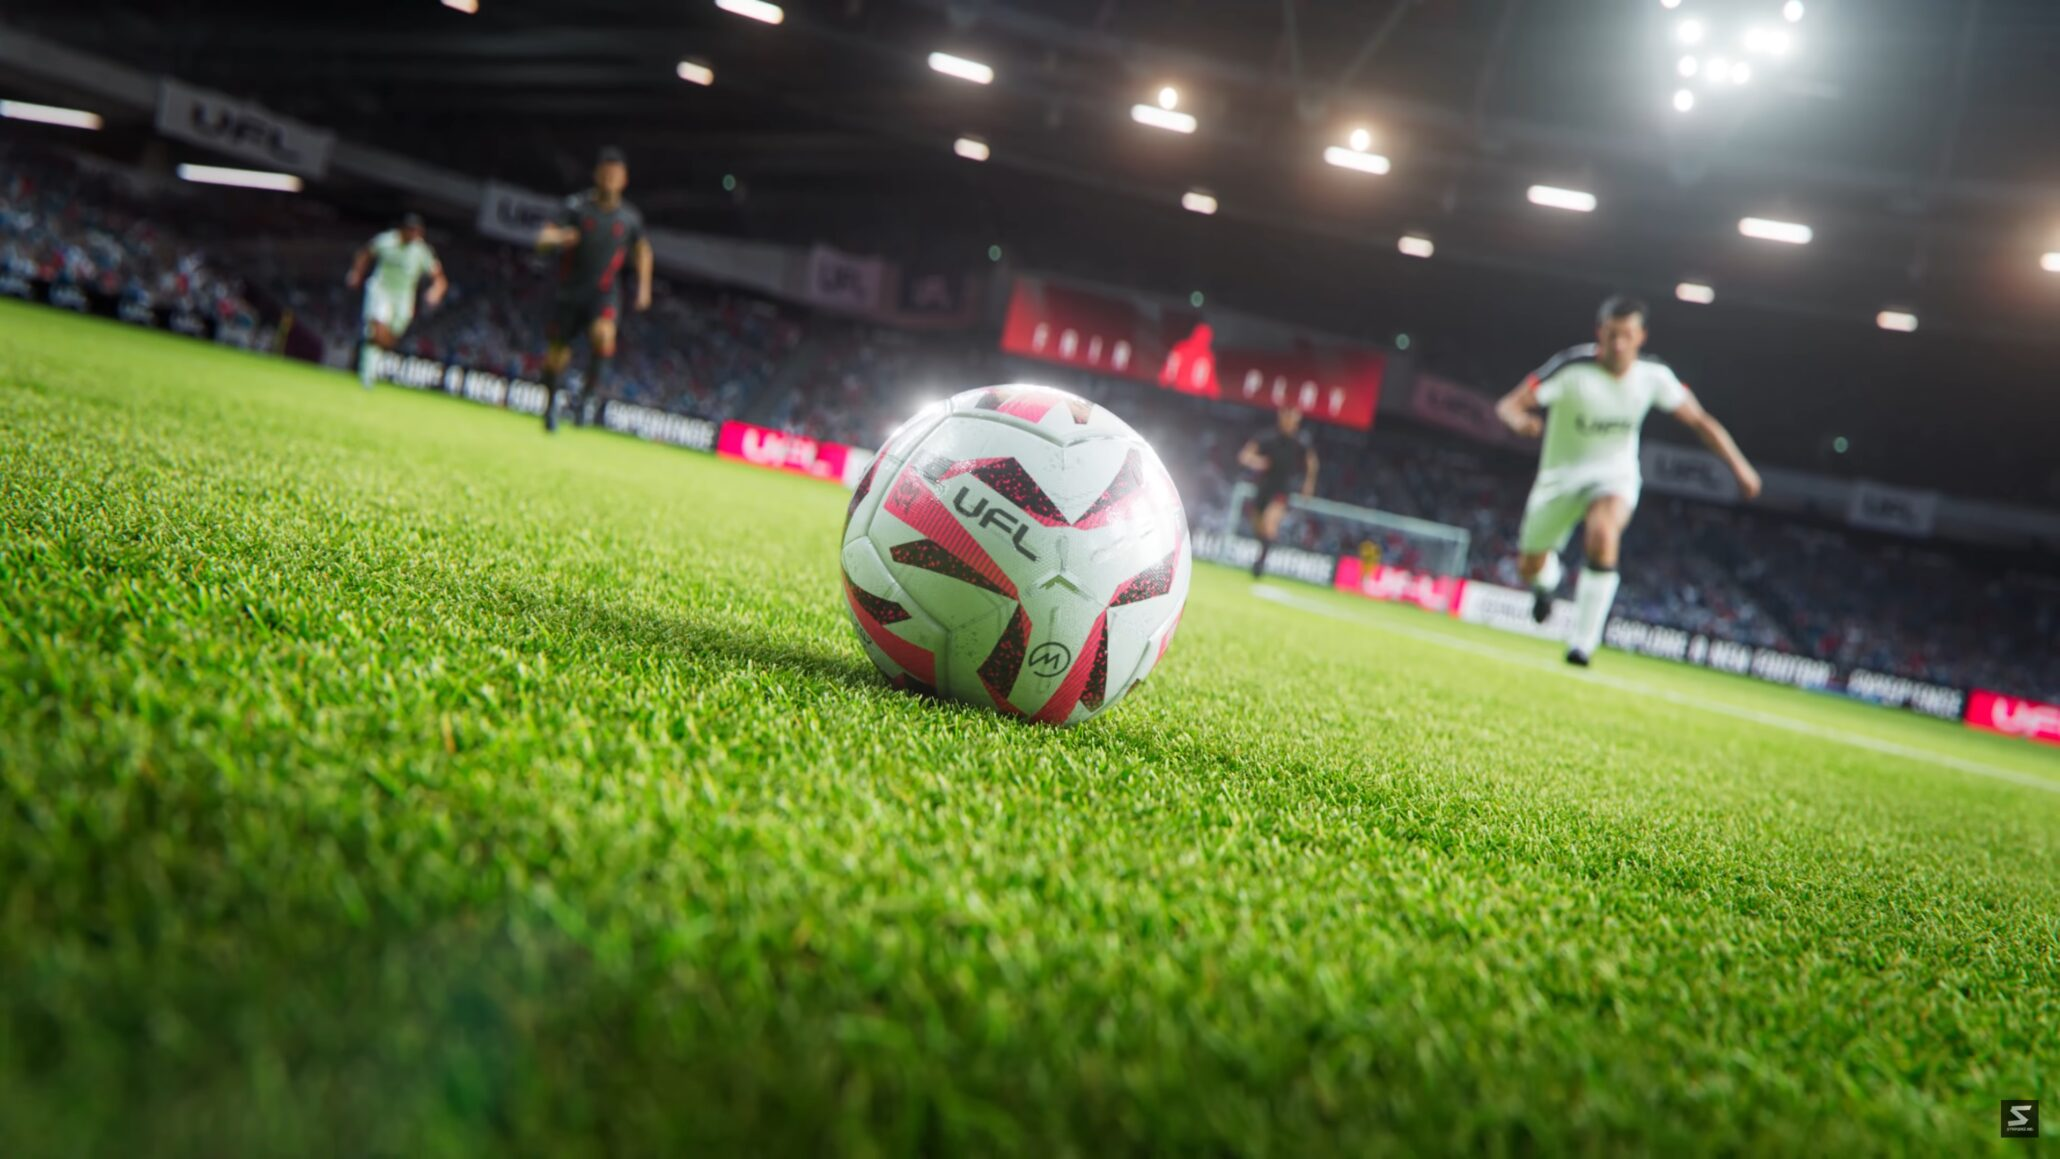 UFL: New football simulation wants to compete with FIFA and eFootball